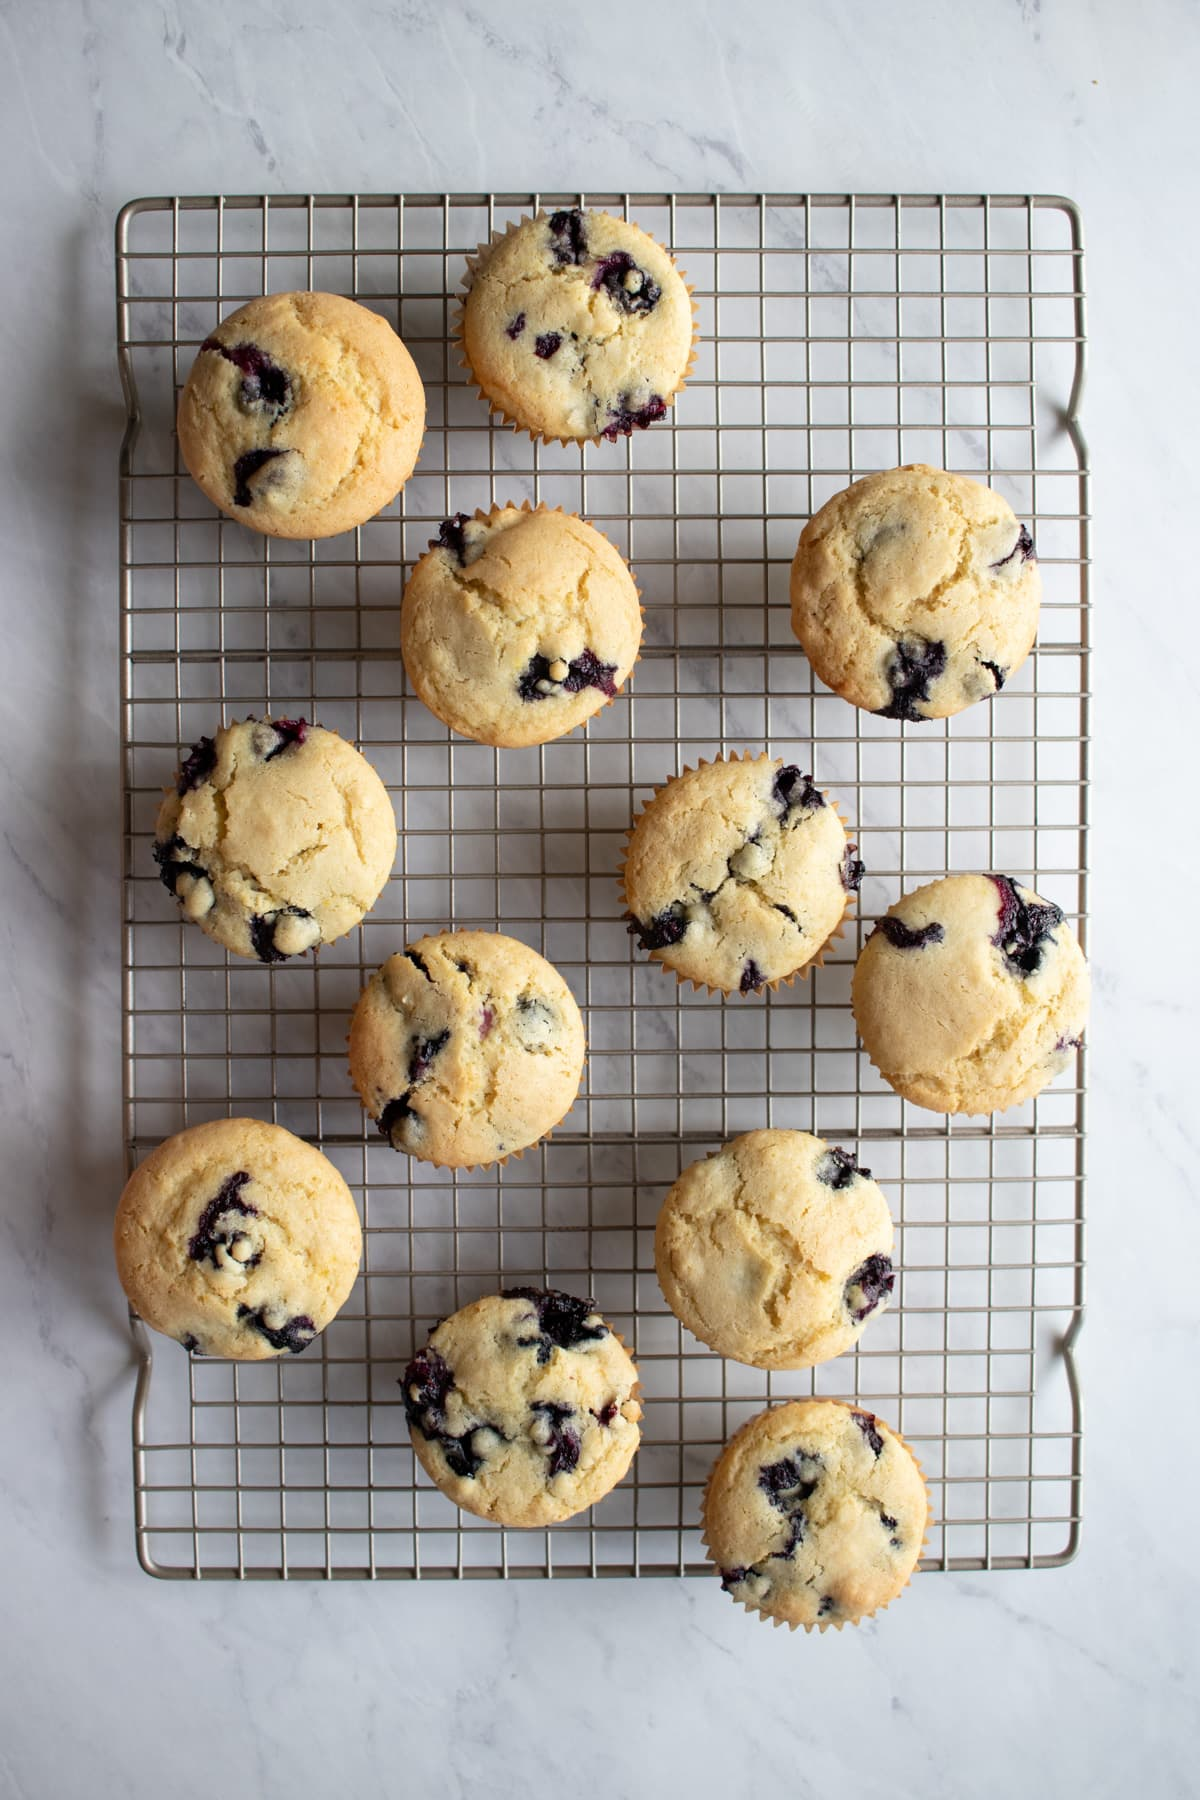 A batch of blueberry muffins on a cooling rack.